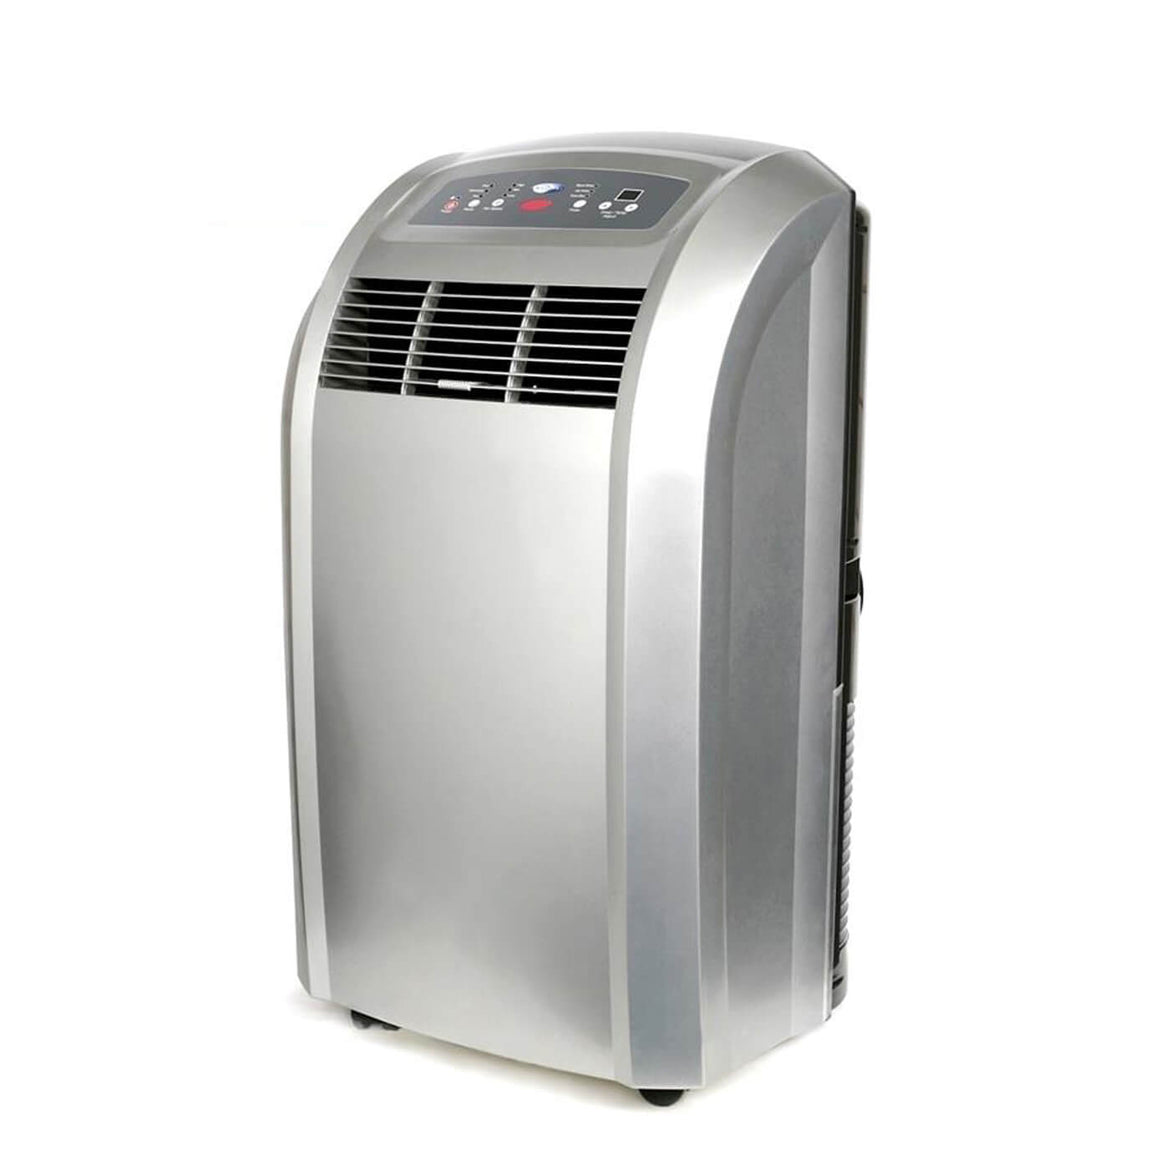 Whynter Eco-friendly 12000 BTU Portable Air Conditioner - ARC-12S - Wine Cooler City